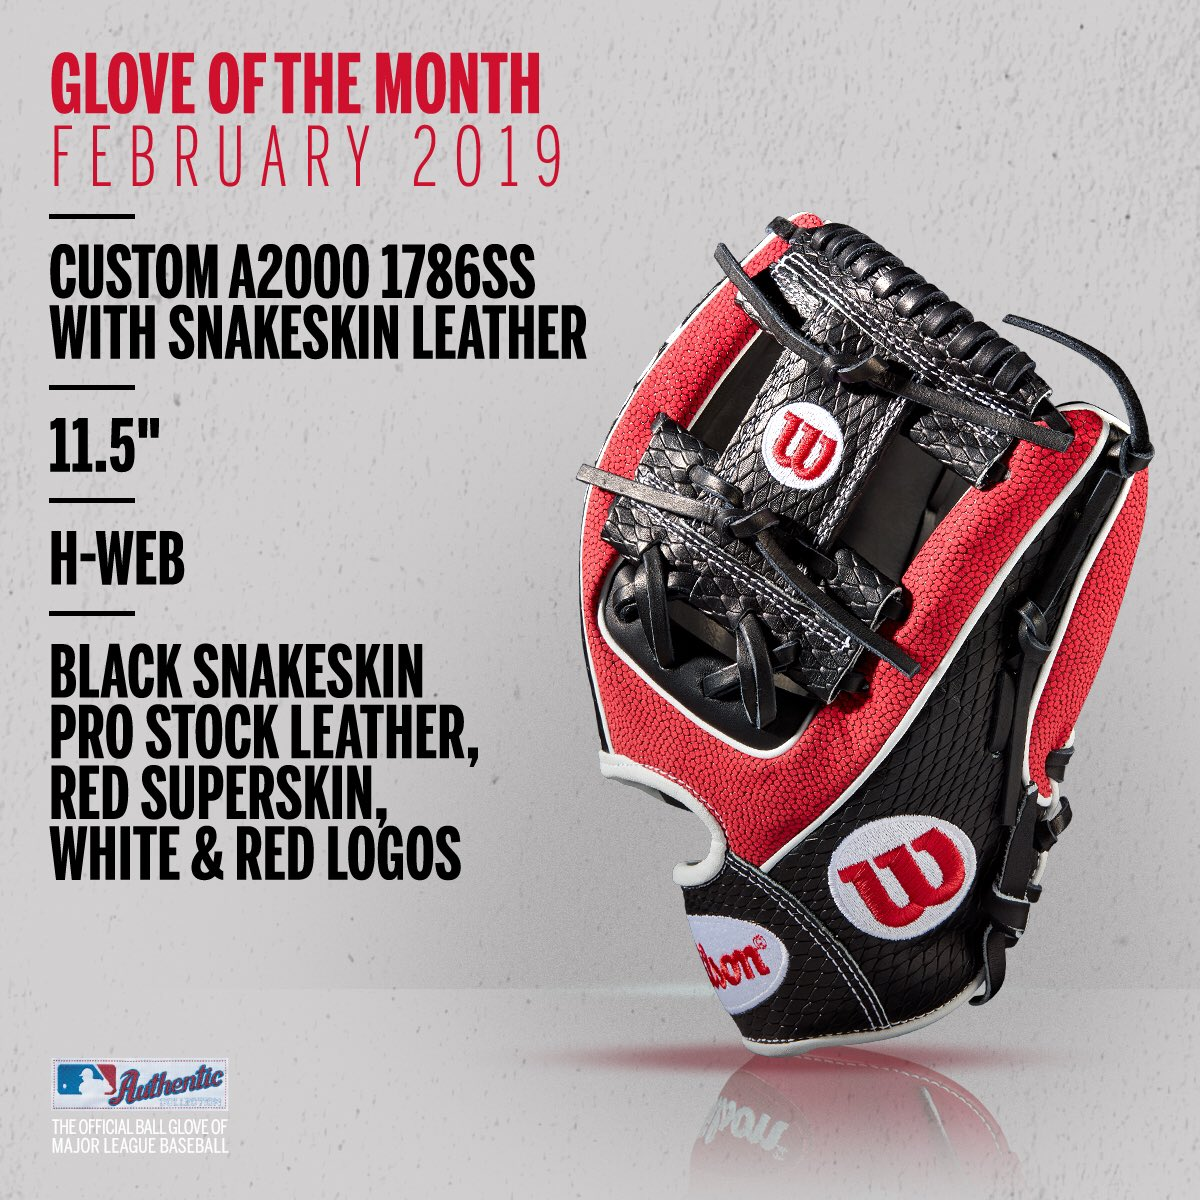 Wilson Glove of the Month February 2019